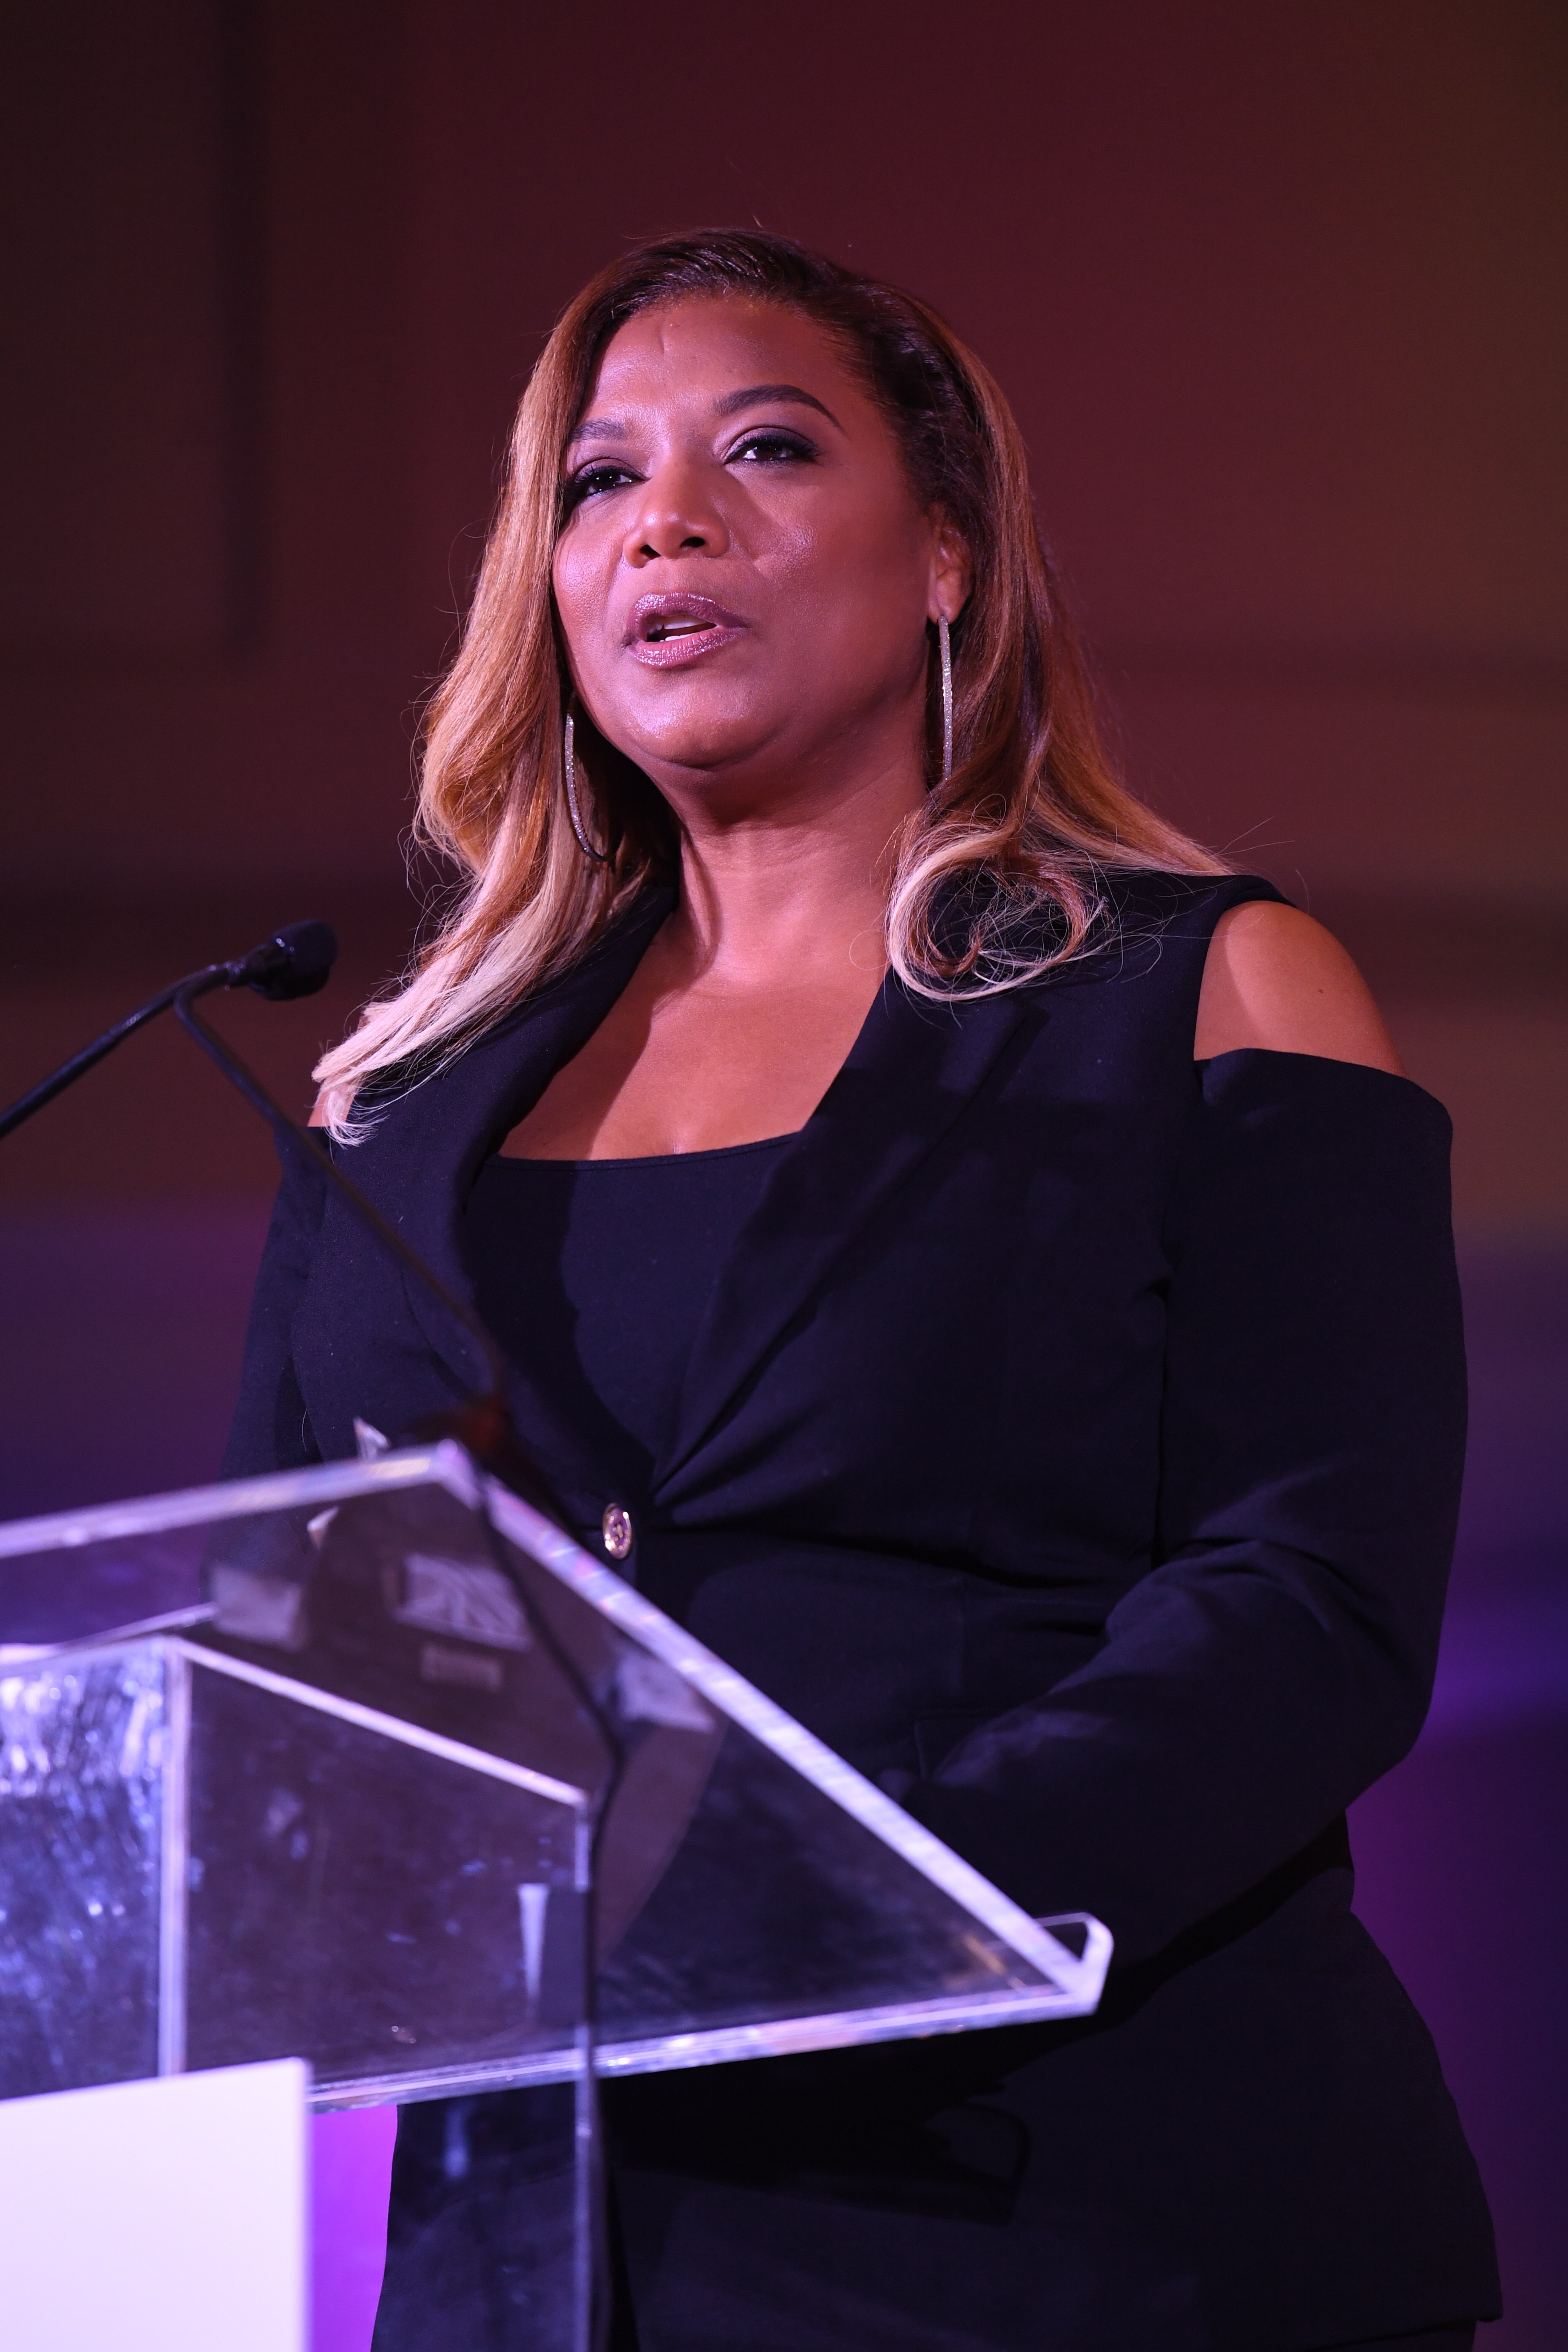 Queen Latifah at the BronzeLens Film Festival Women SuperStars Luncheon on Aug. 25, 2017 in Georgia | Photo: Getty Images